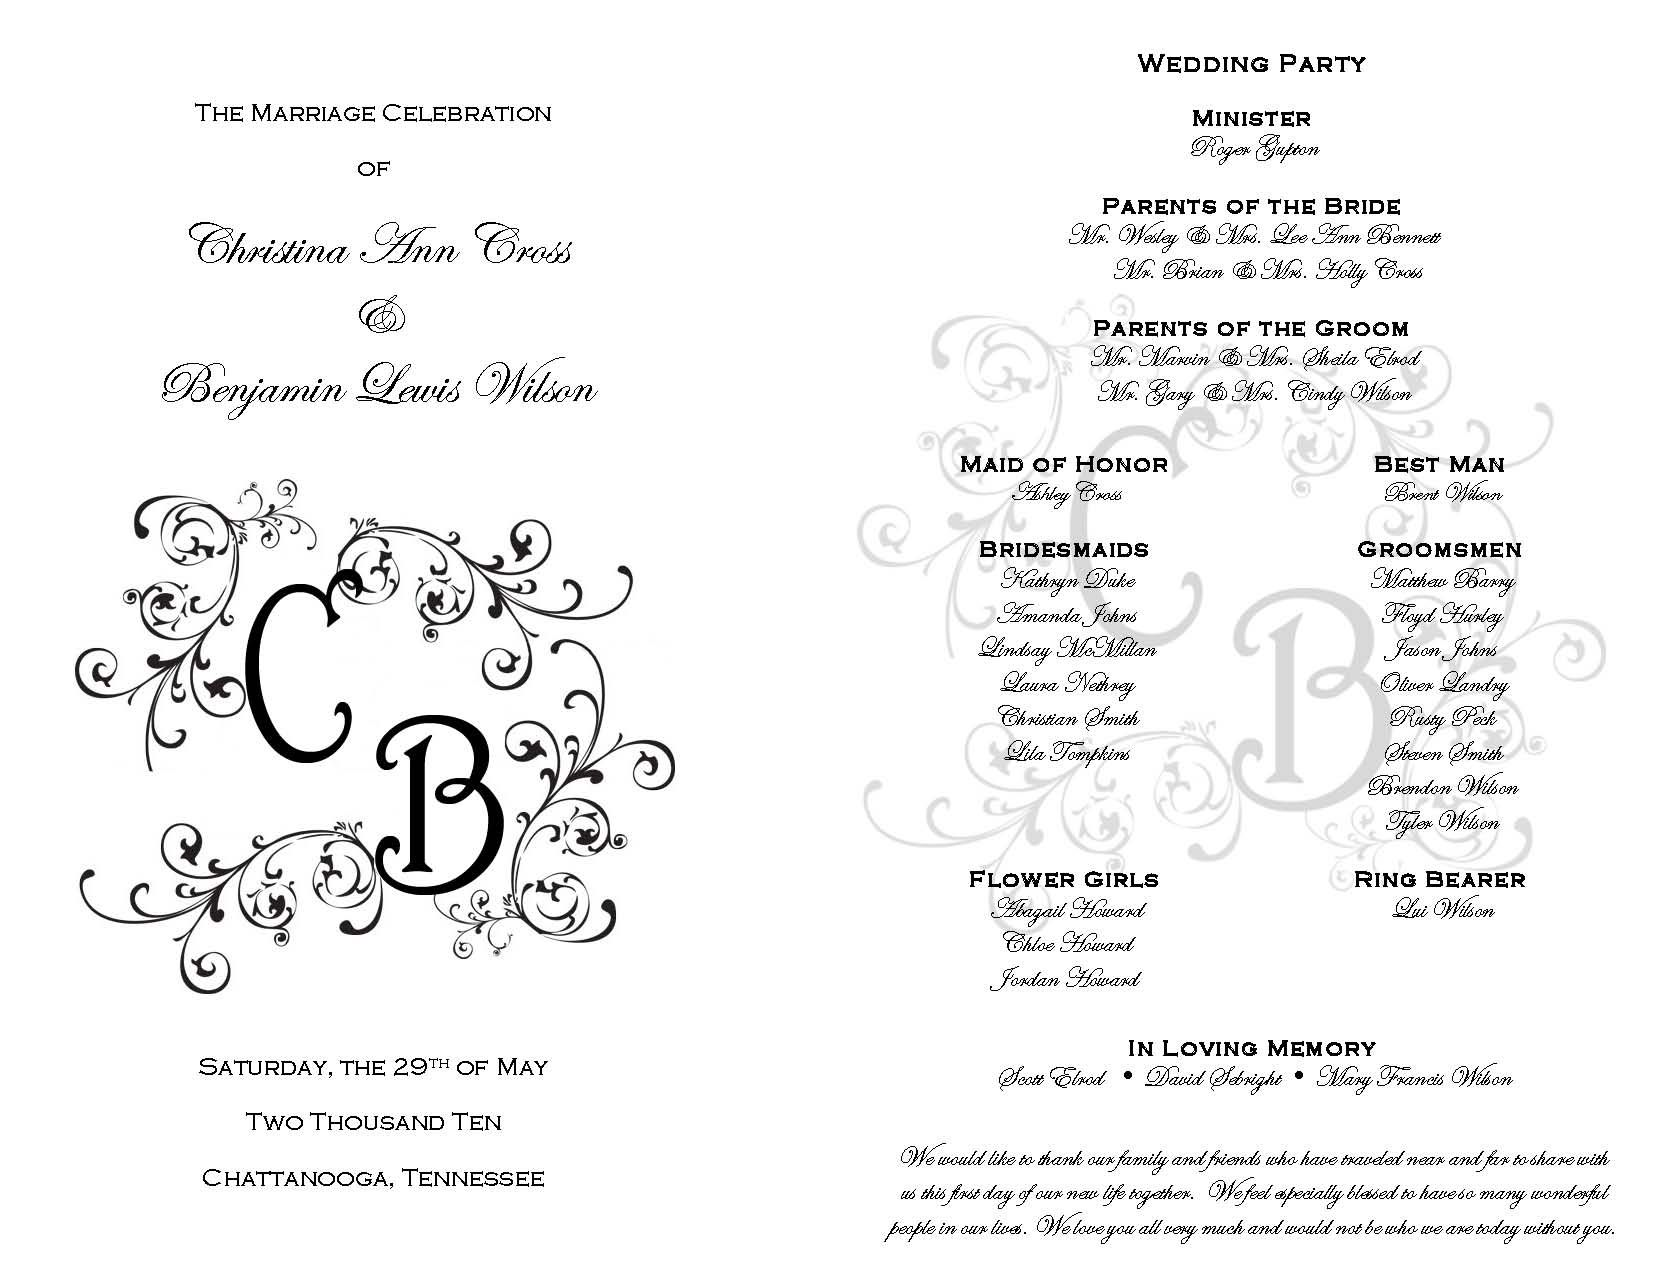 printable wedding programs on pinterest free printable wedding wedding program templates and. Black Bedroom Furniture Sets. Home Design Ideas